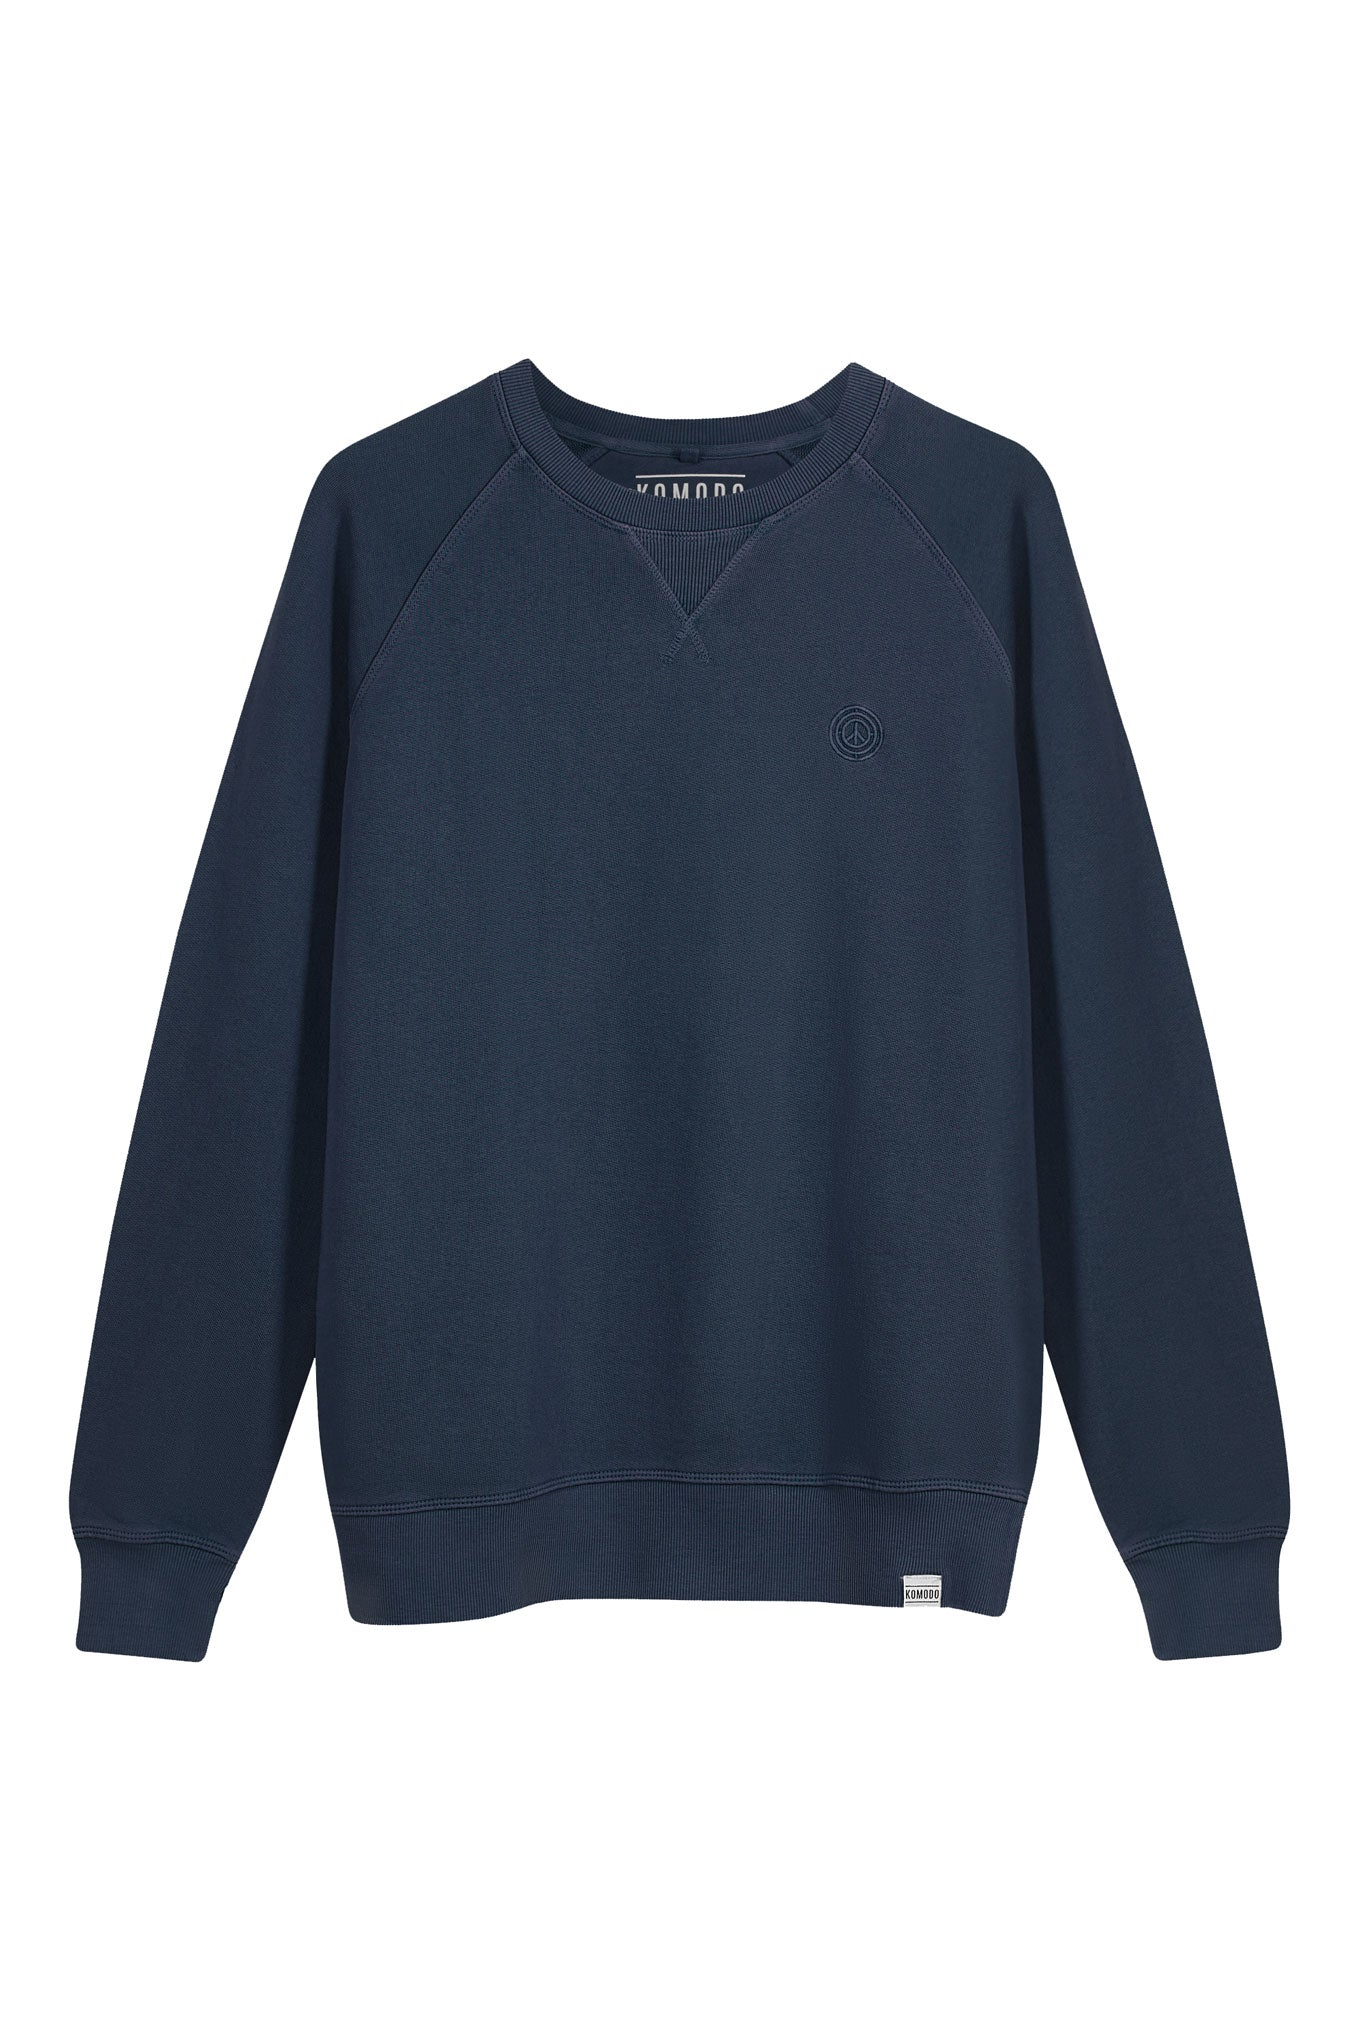 ANTON Mens Organic Cotton Crewneck Navy